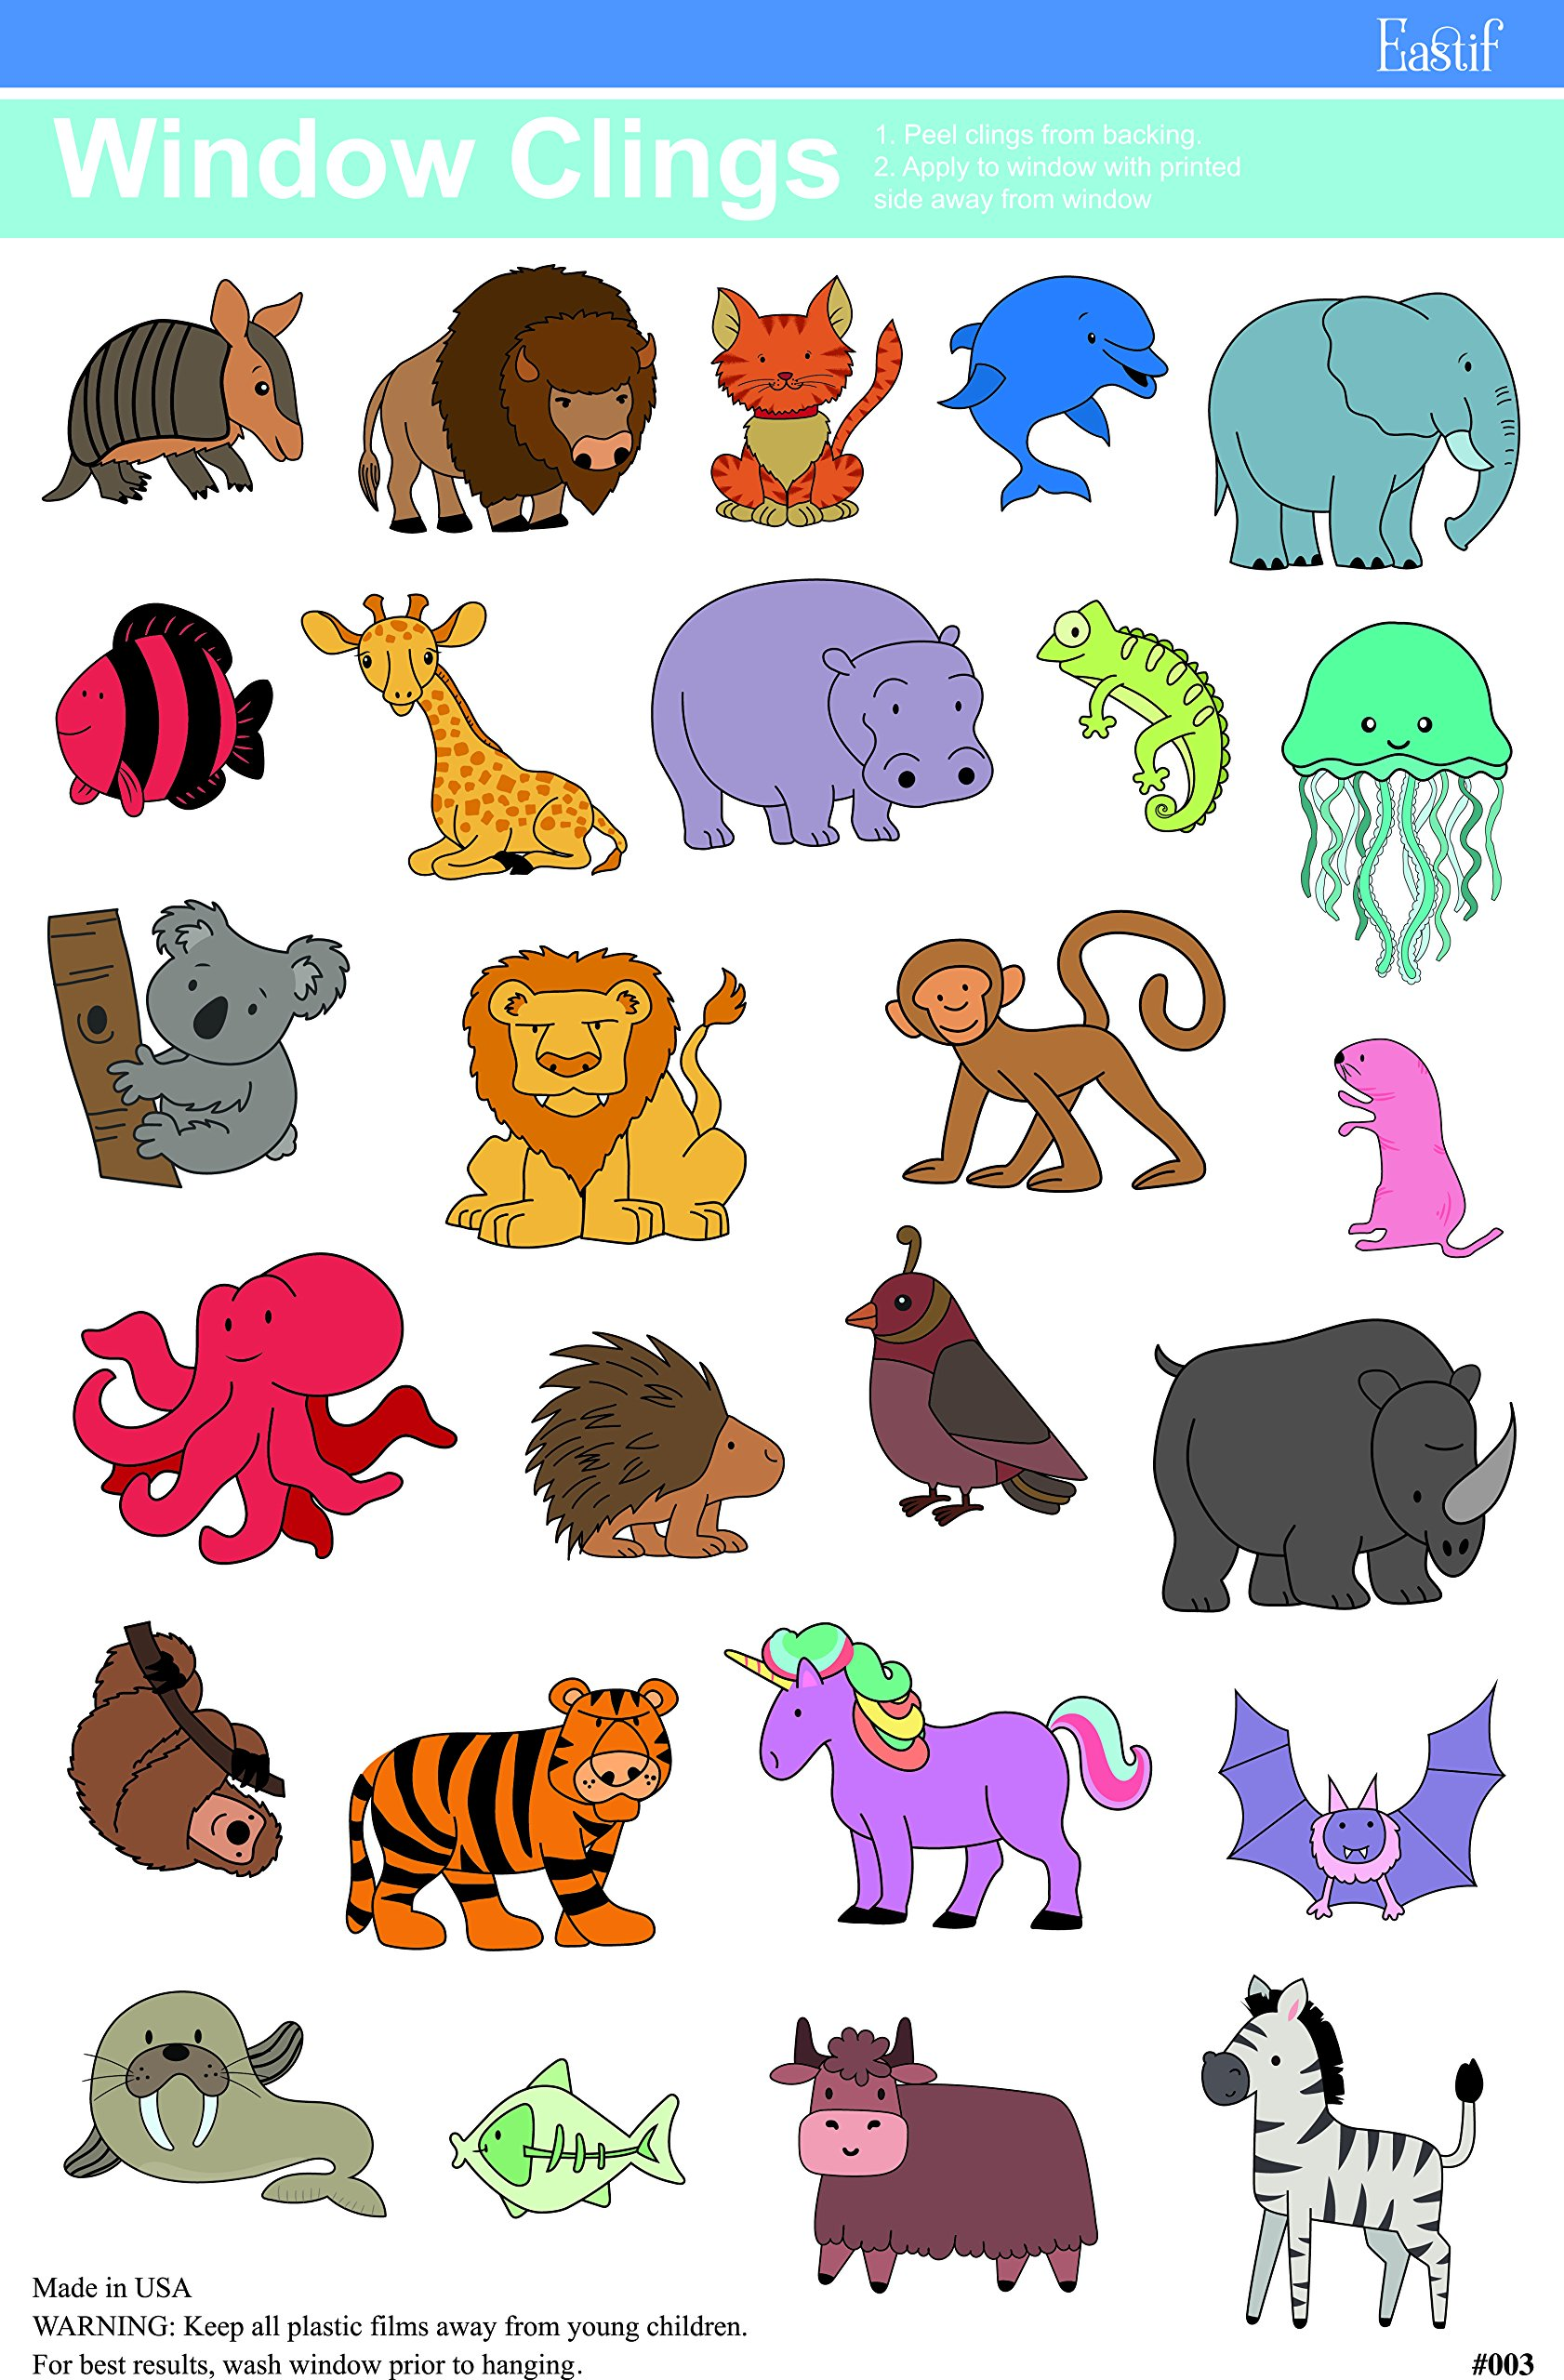 ABC & Animals Window Cling by Eastif (Image #3)